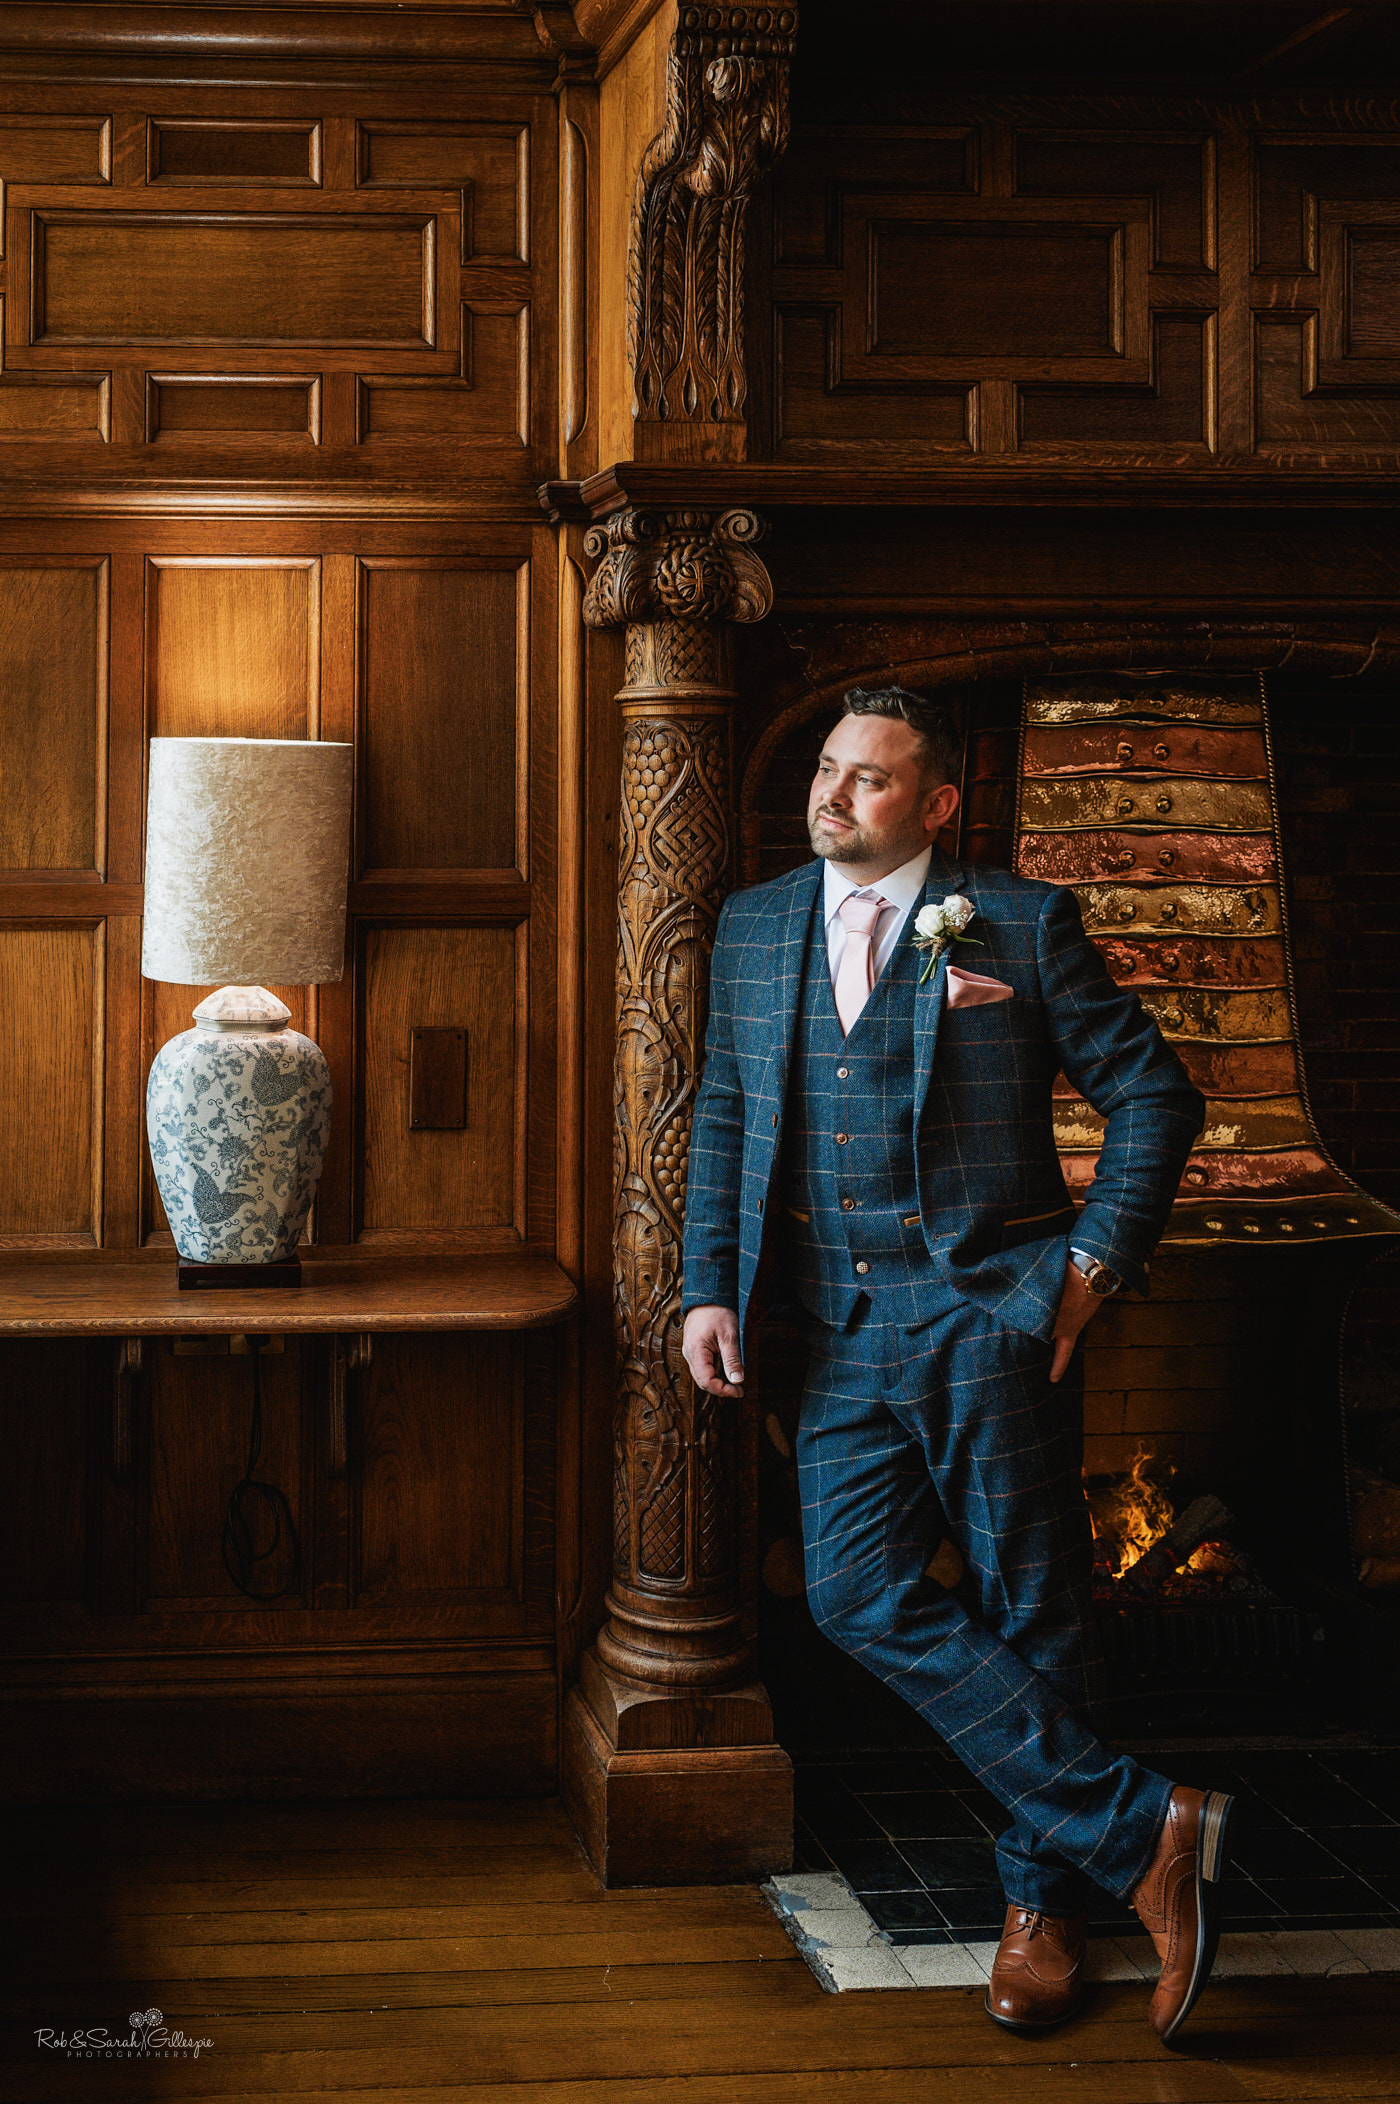 Groom portrait at Pendrell Hall with beautiful wood panelling